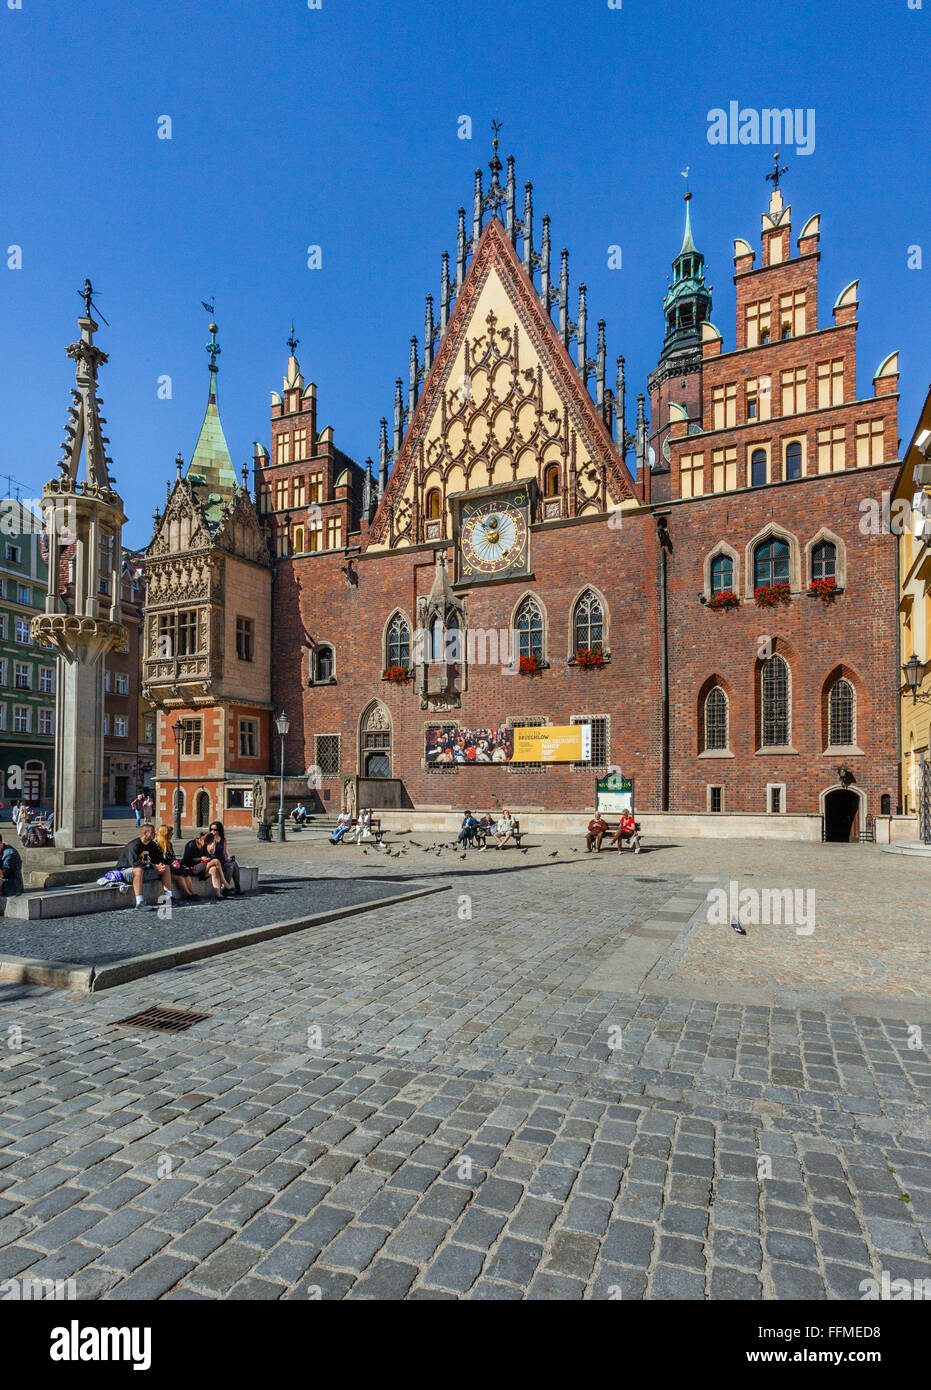 Poland, Lower Silesia, Wroclaw (Breslau), Gothic style Old Town Hall - Stock Image